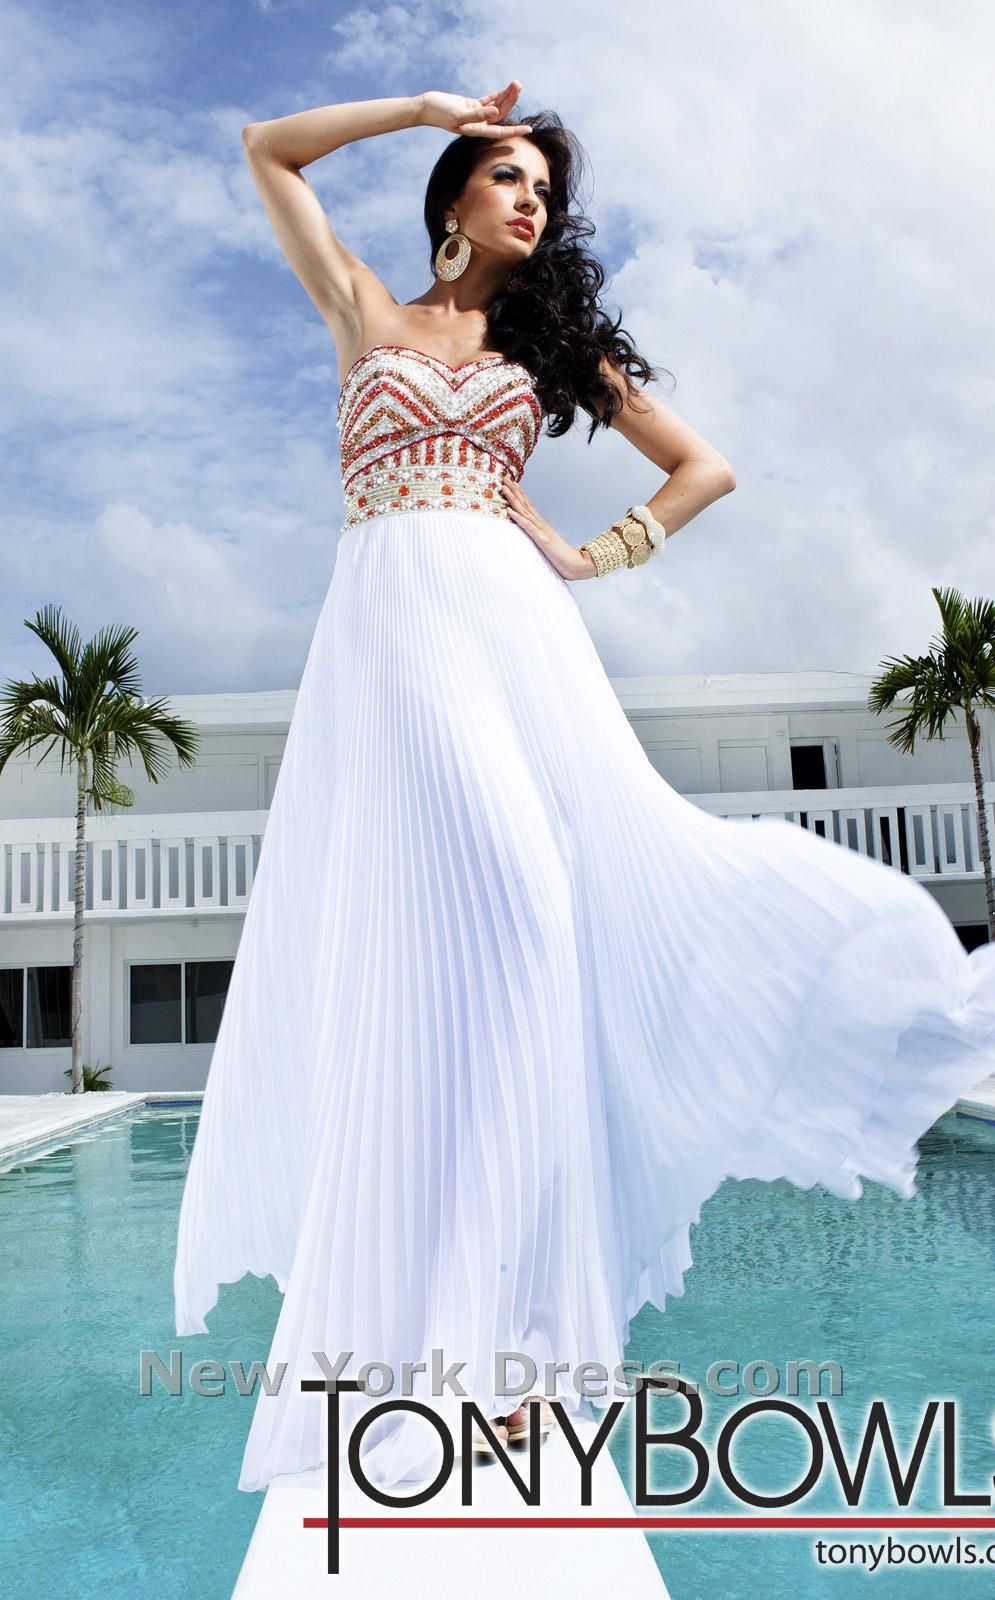 Itus ana and i love this dress dresses pinterest tony bowls